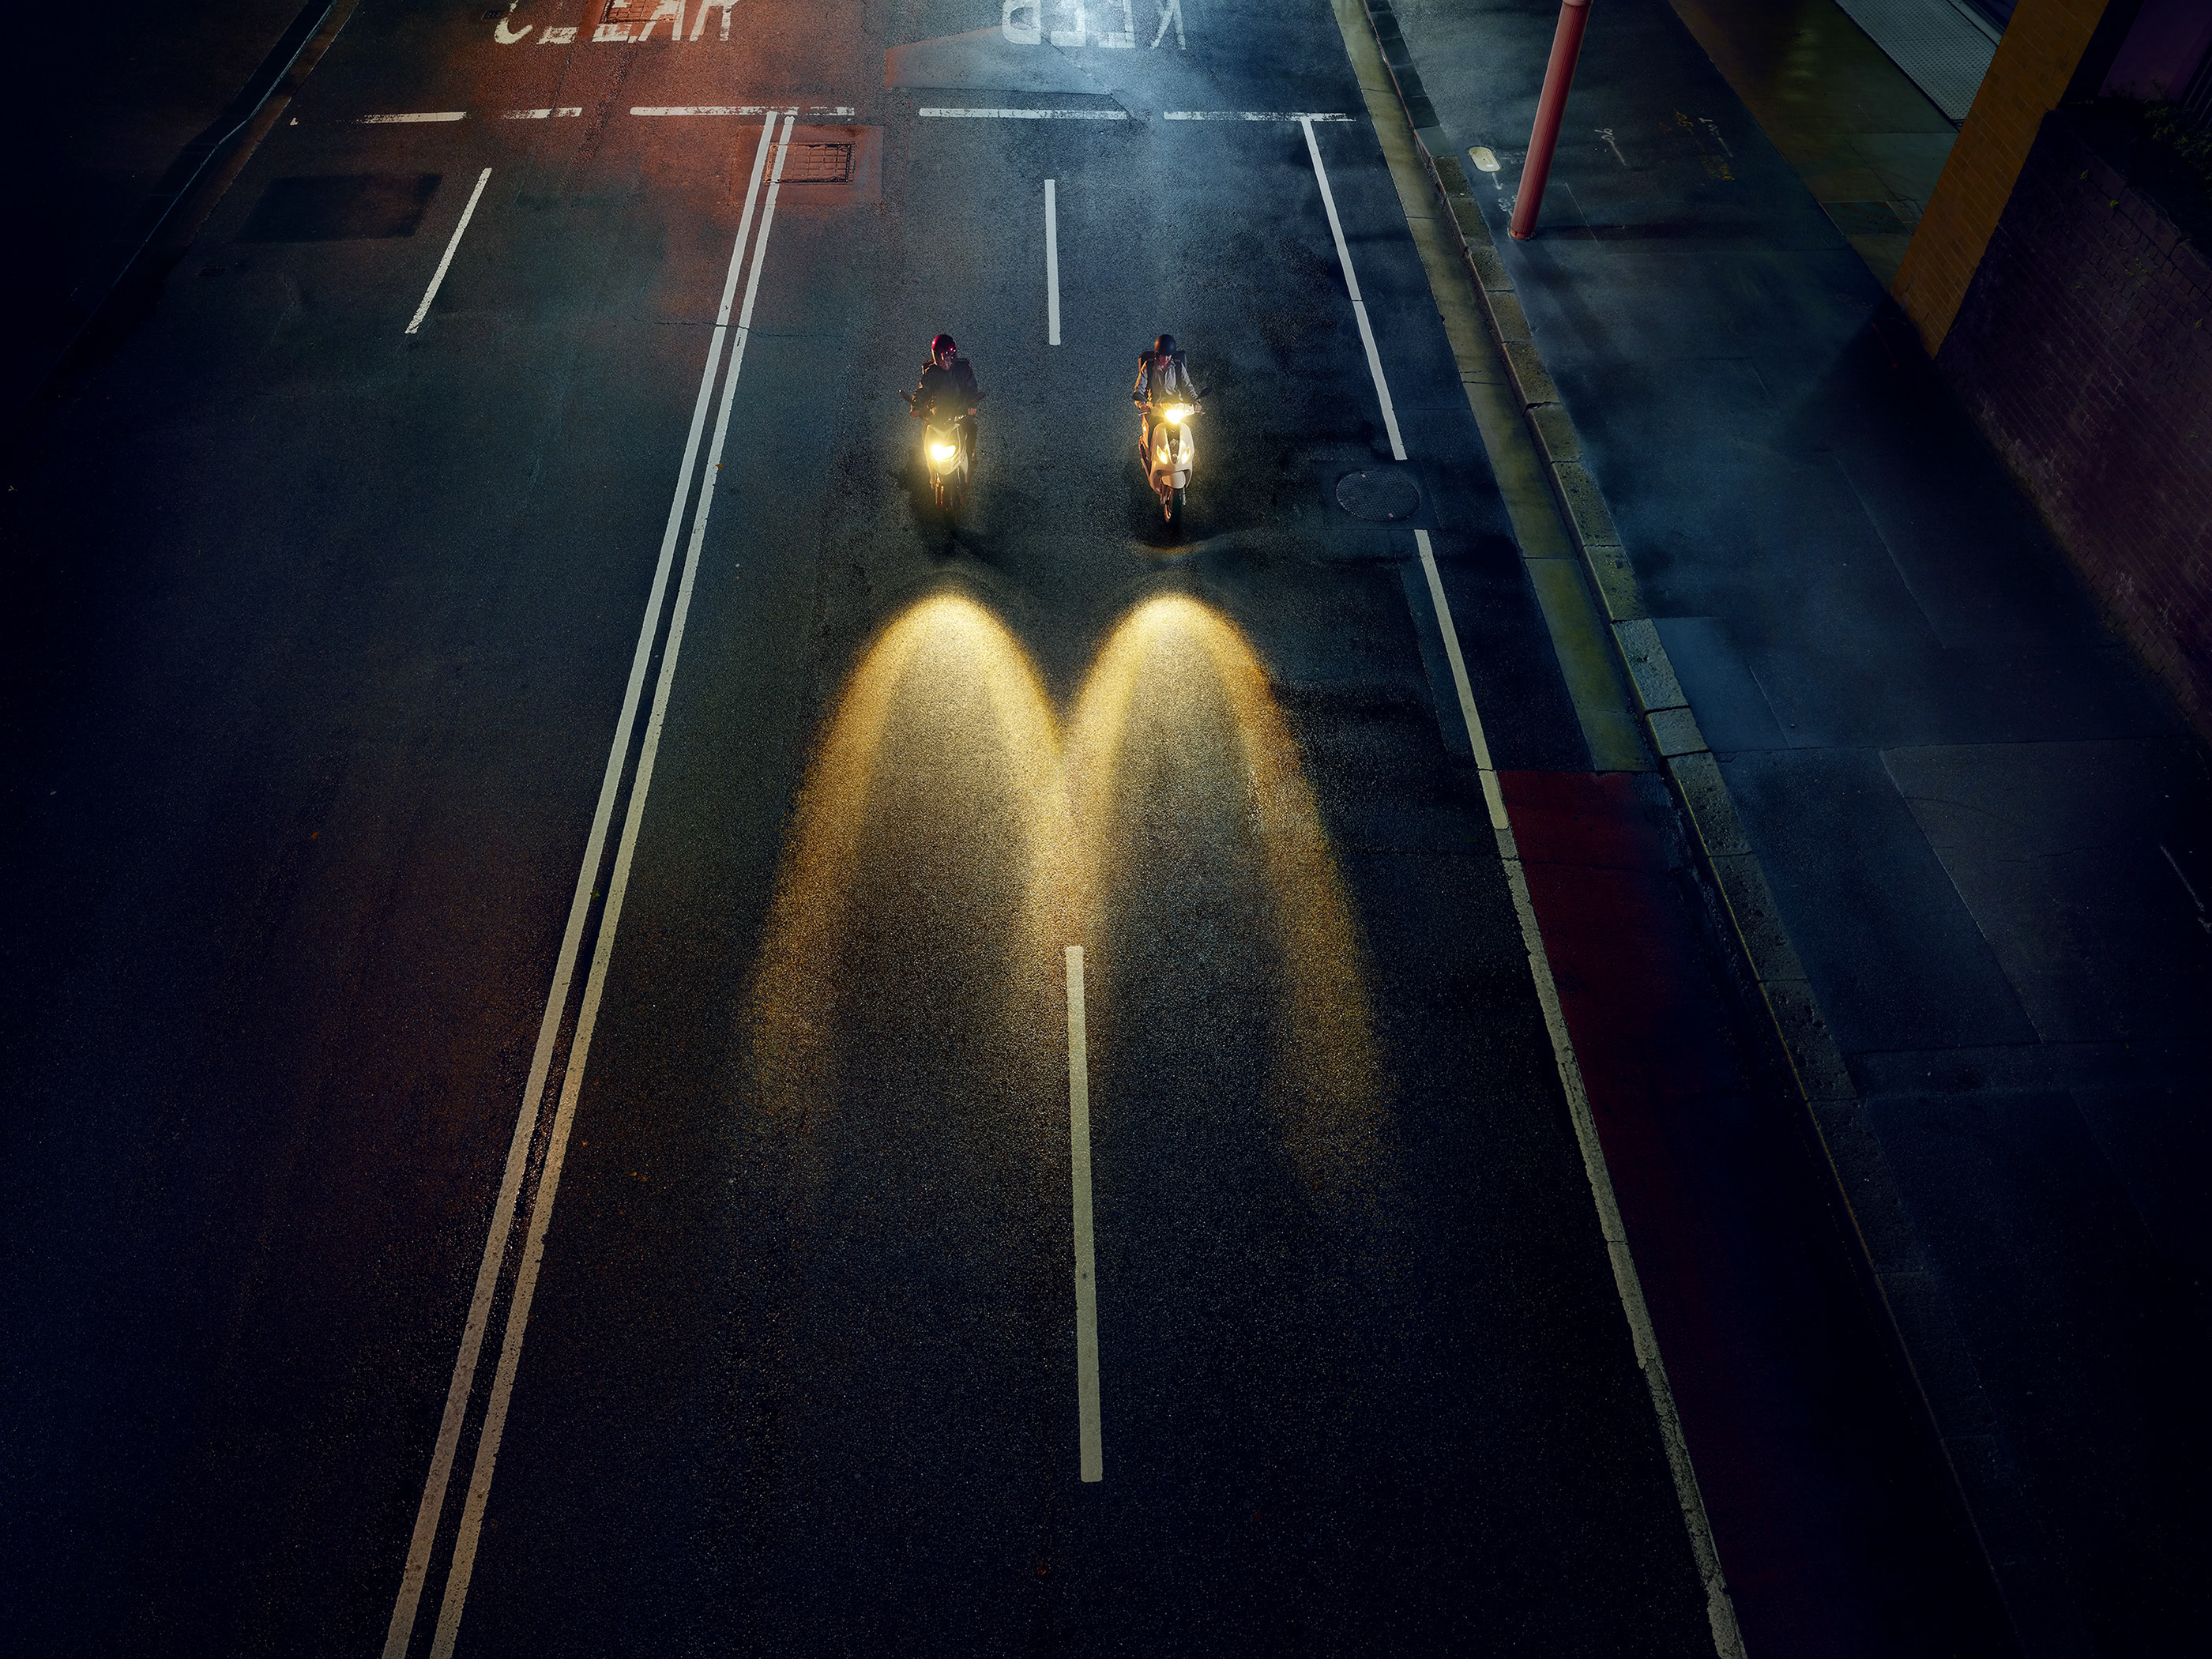 Clever Advertising for the McDonald's Golden Arches